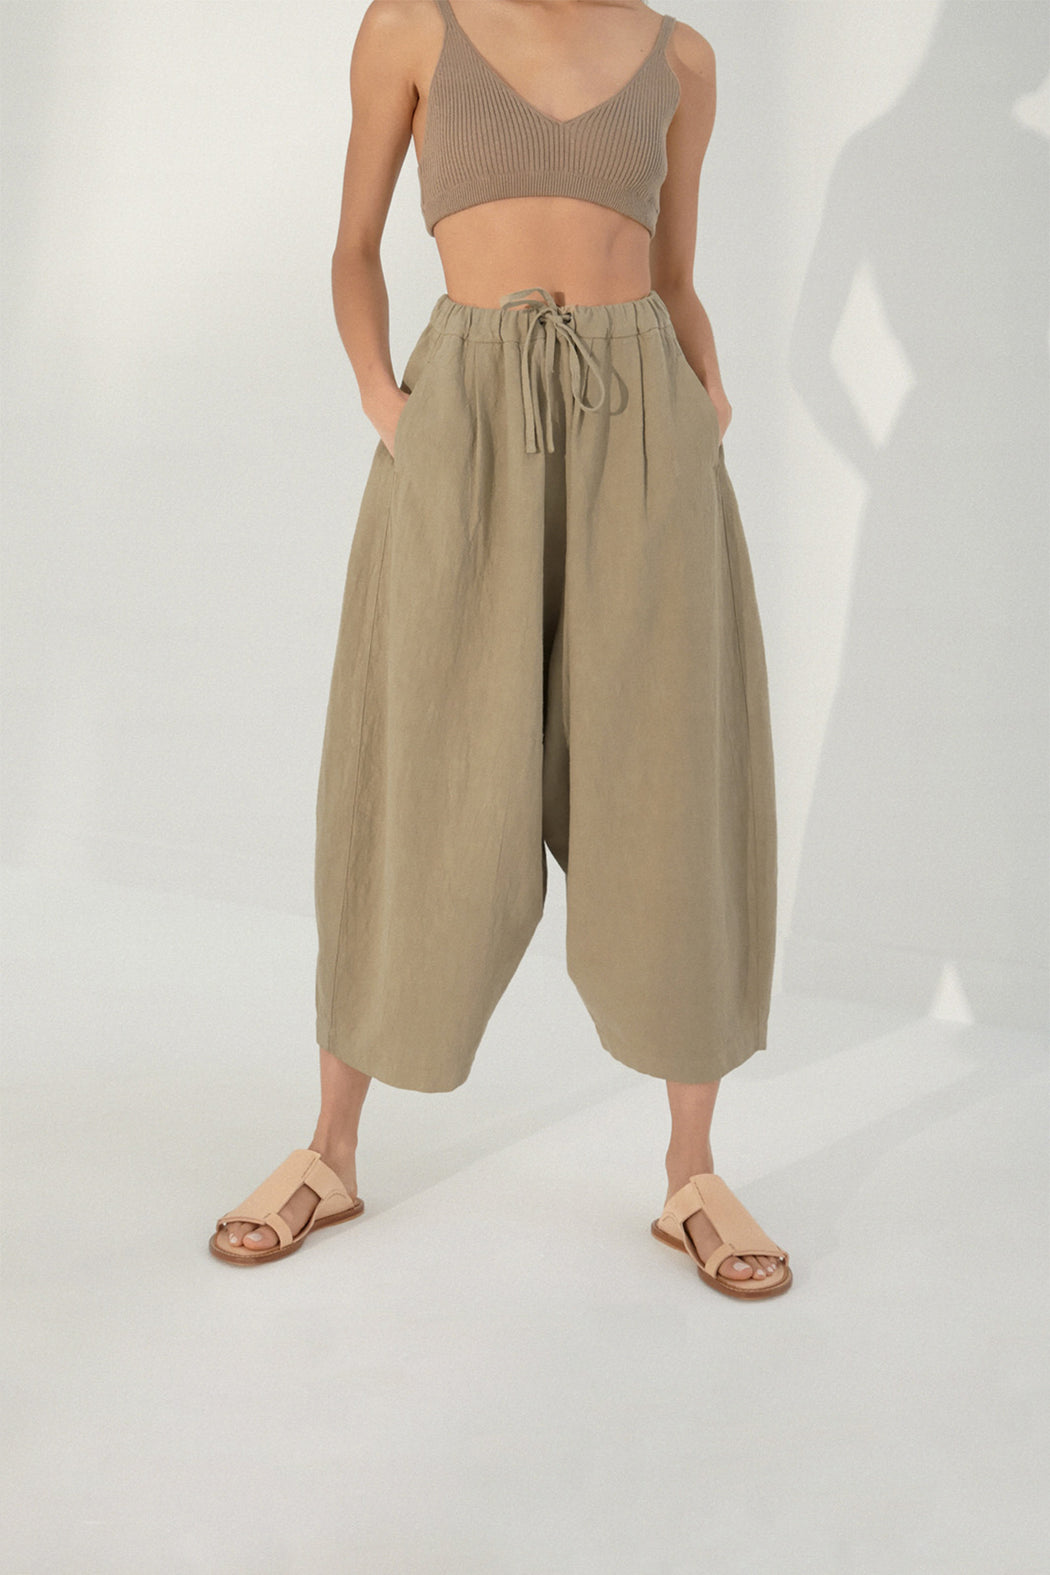 Mónica Cordera | MAXI RAMIE PANTS | MAXI RAMIE PANTS | SMOKED GREEN | Hazel & Rose | Minneapolis